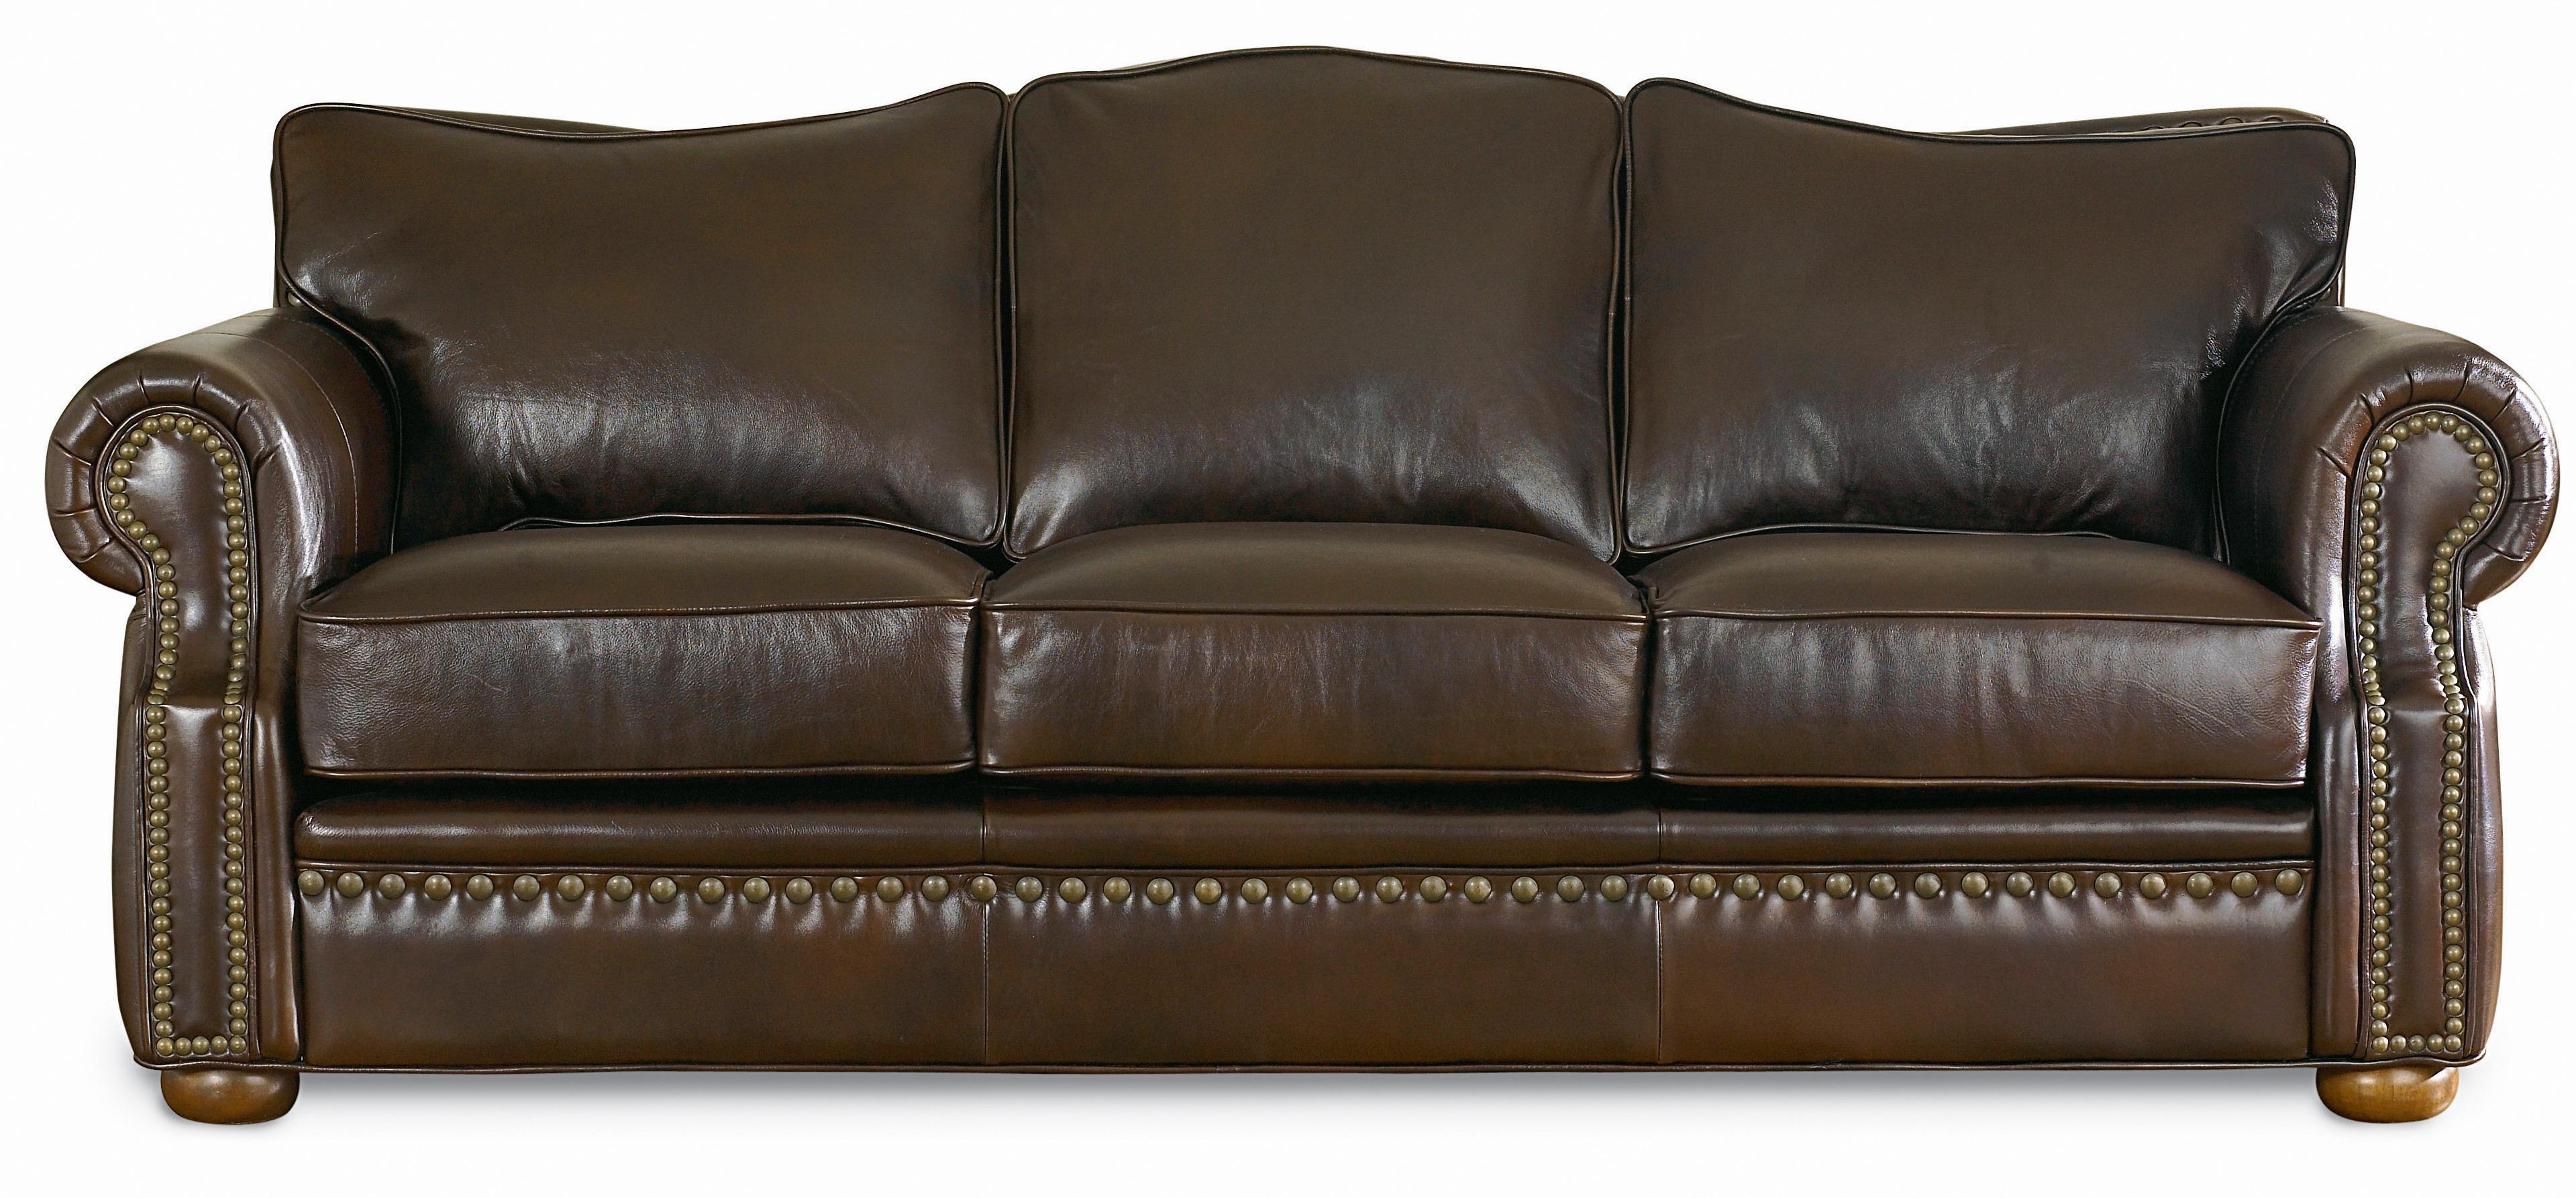 Leather Furniture Laredo Sofa | Texas Leather Interiors In Overstuffed Sofas And Chairs (Image 12 of 20)